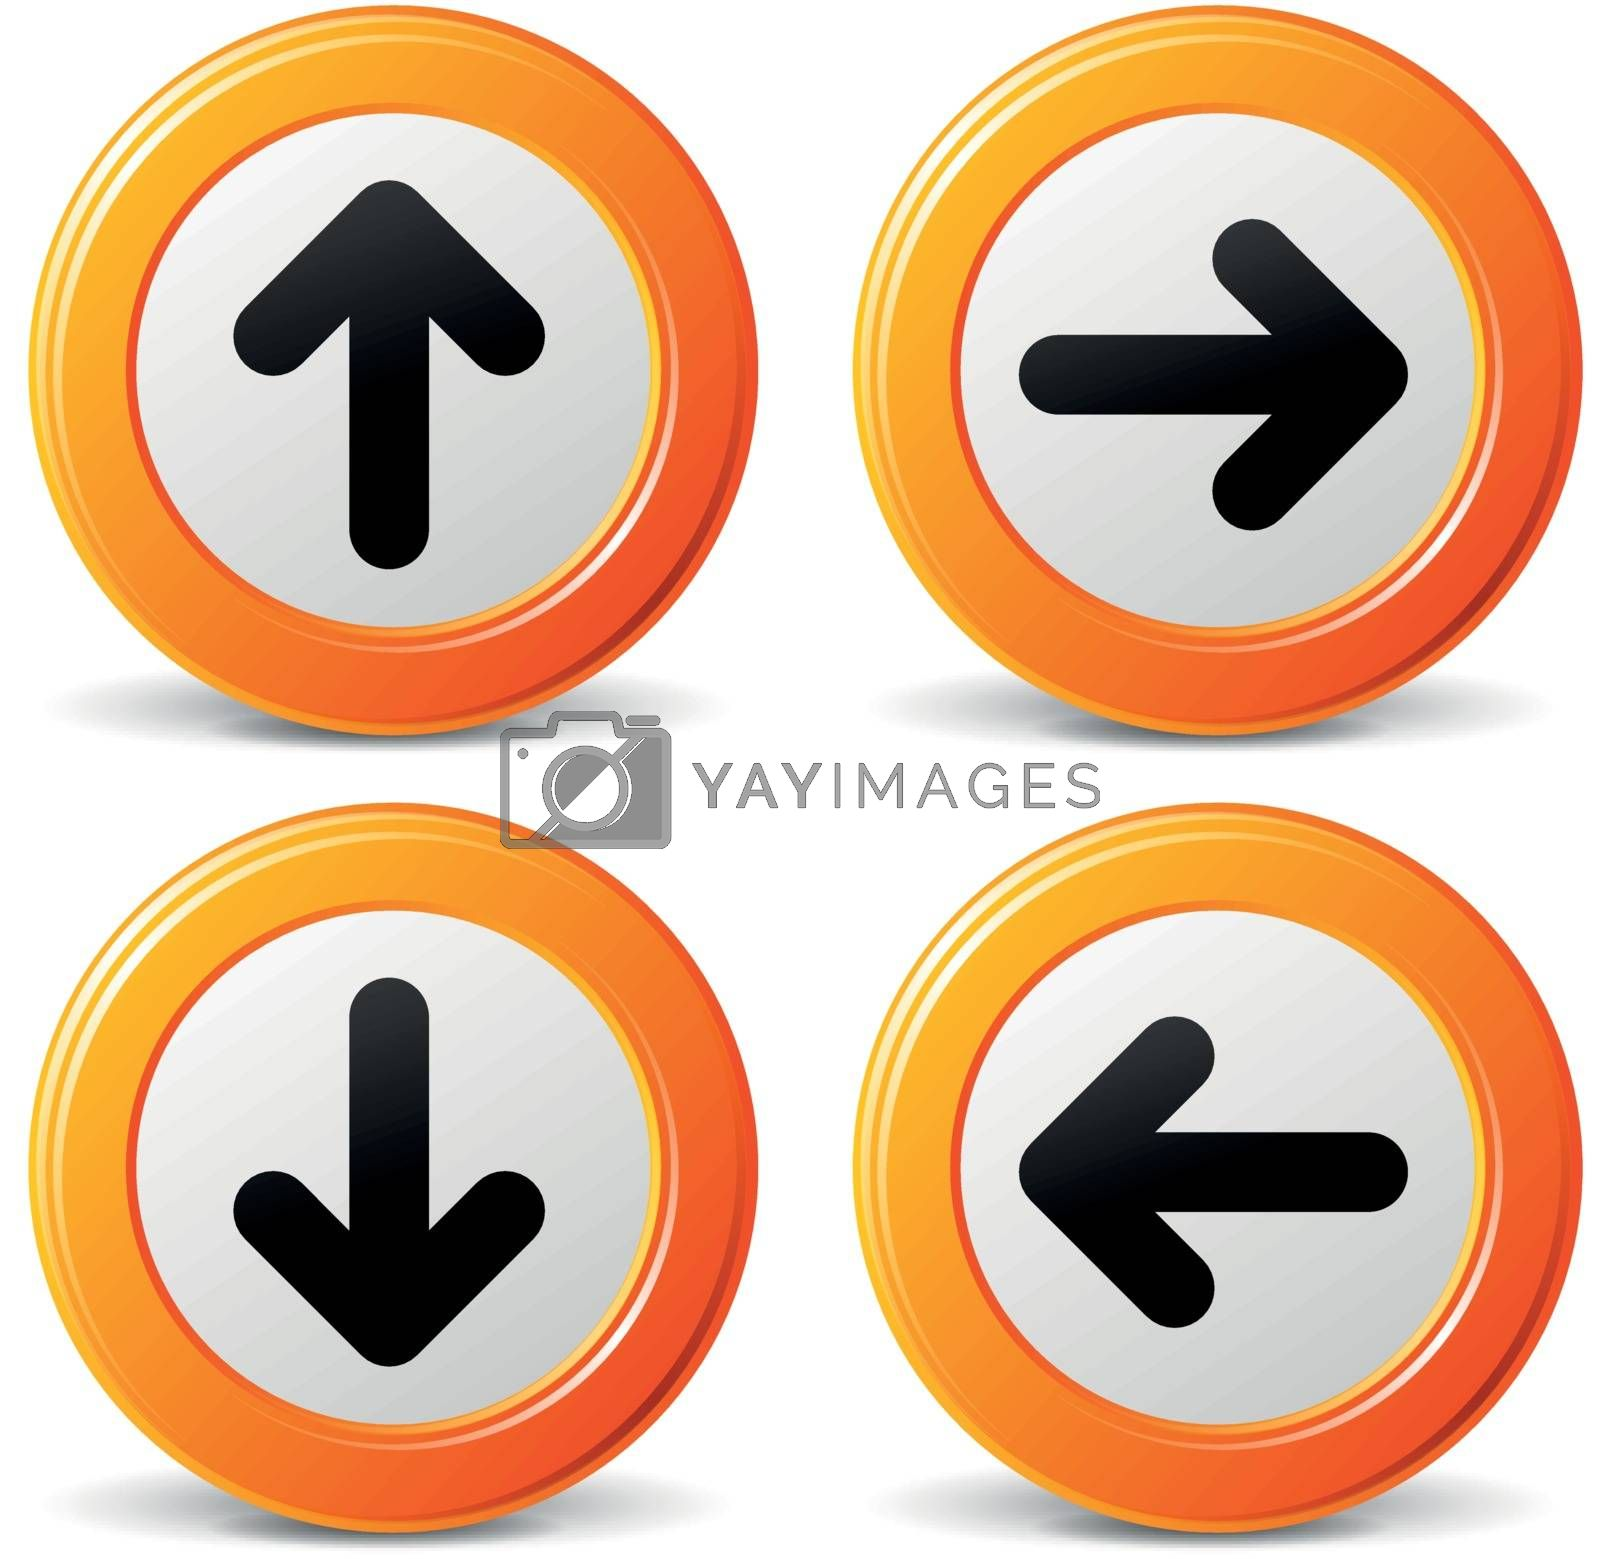 Royalty free image of Vector orange arrows icons by nickylarson974